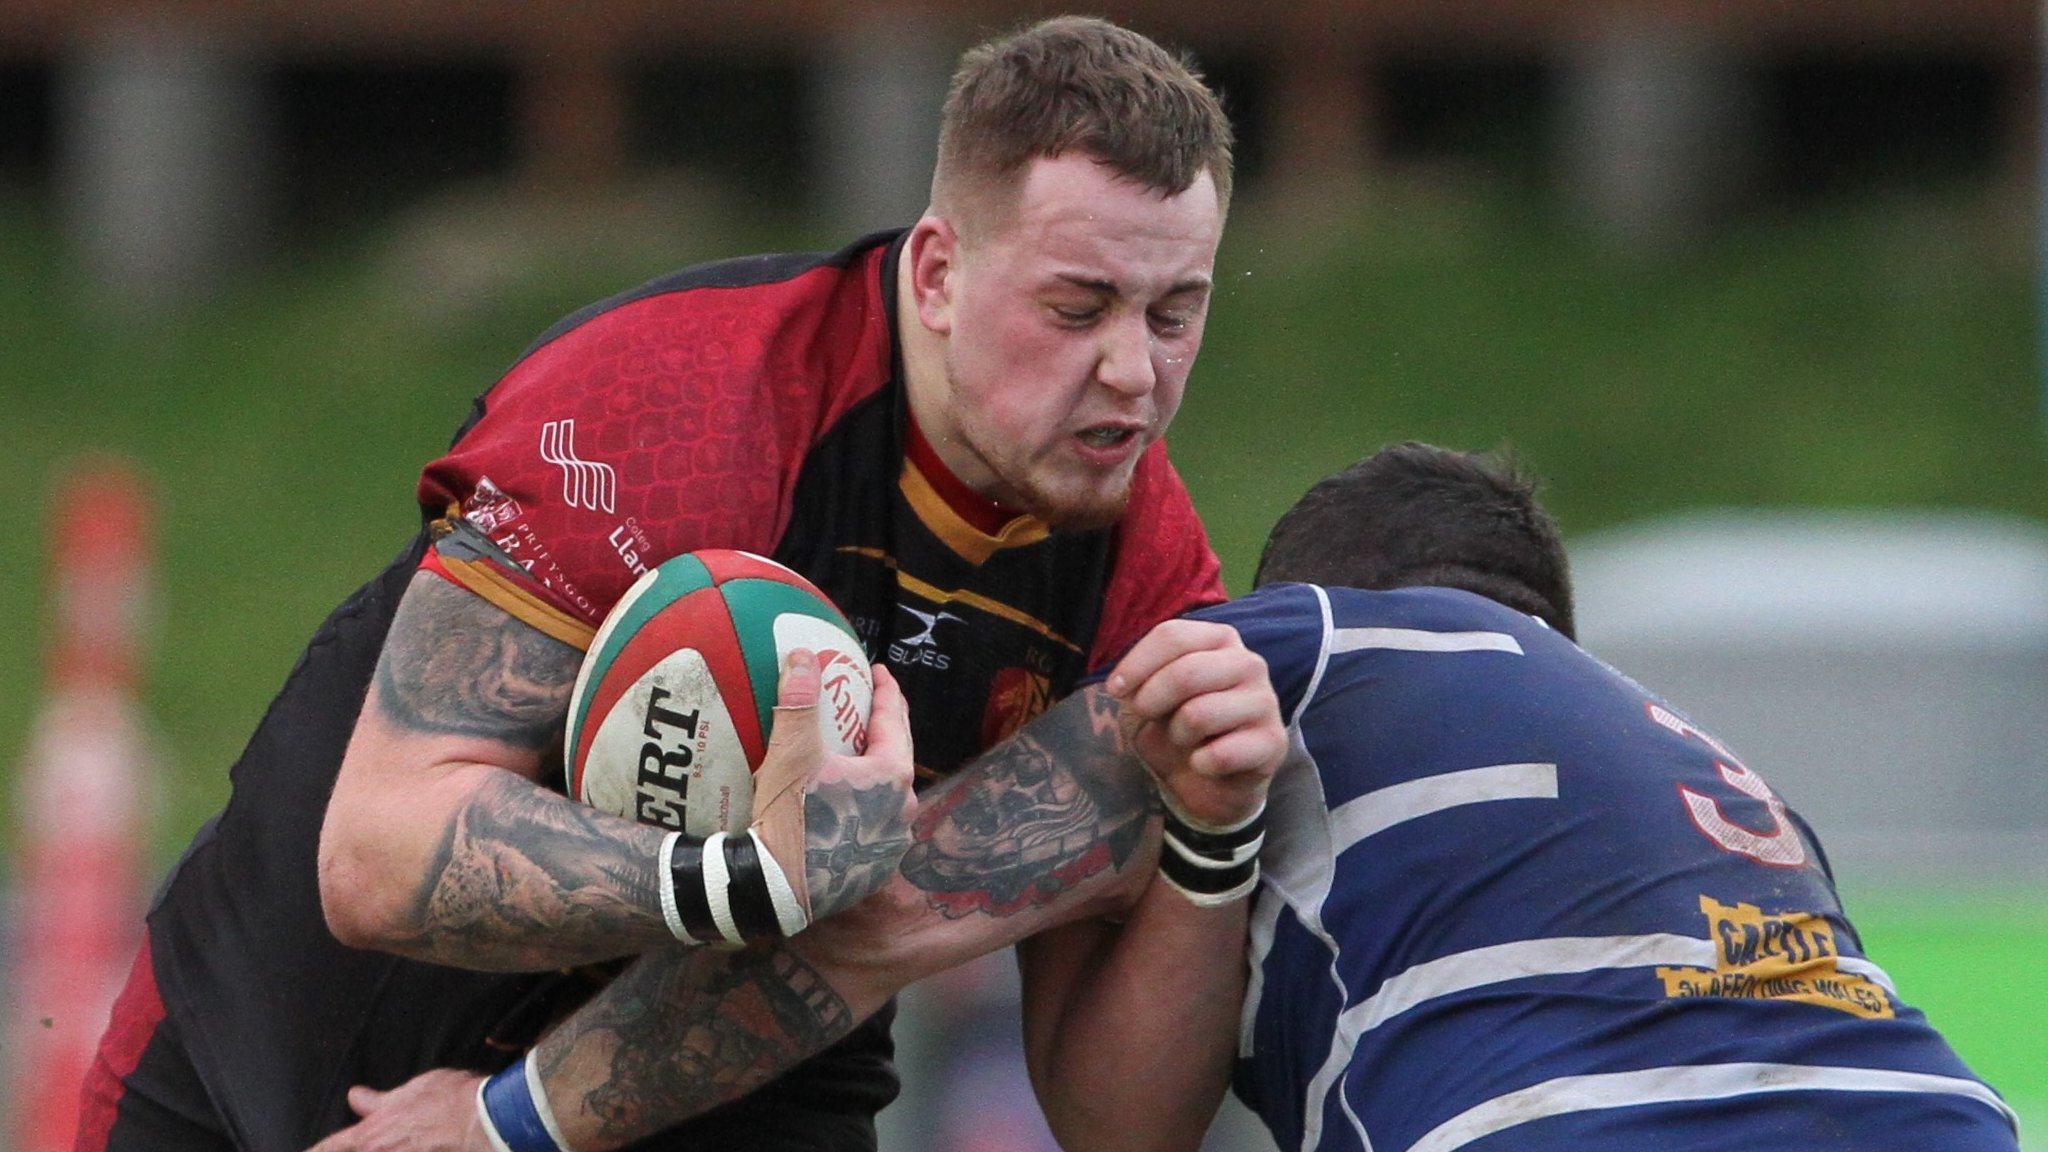 Saracens sign RGC prop Sam Wainwright